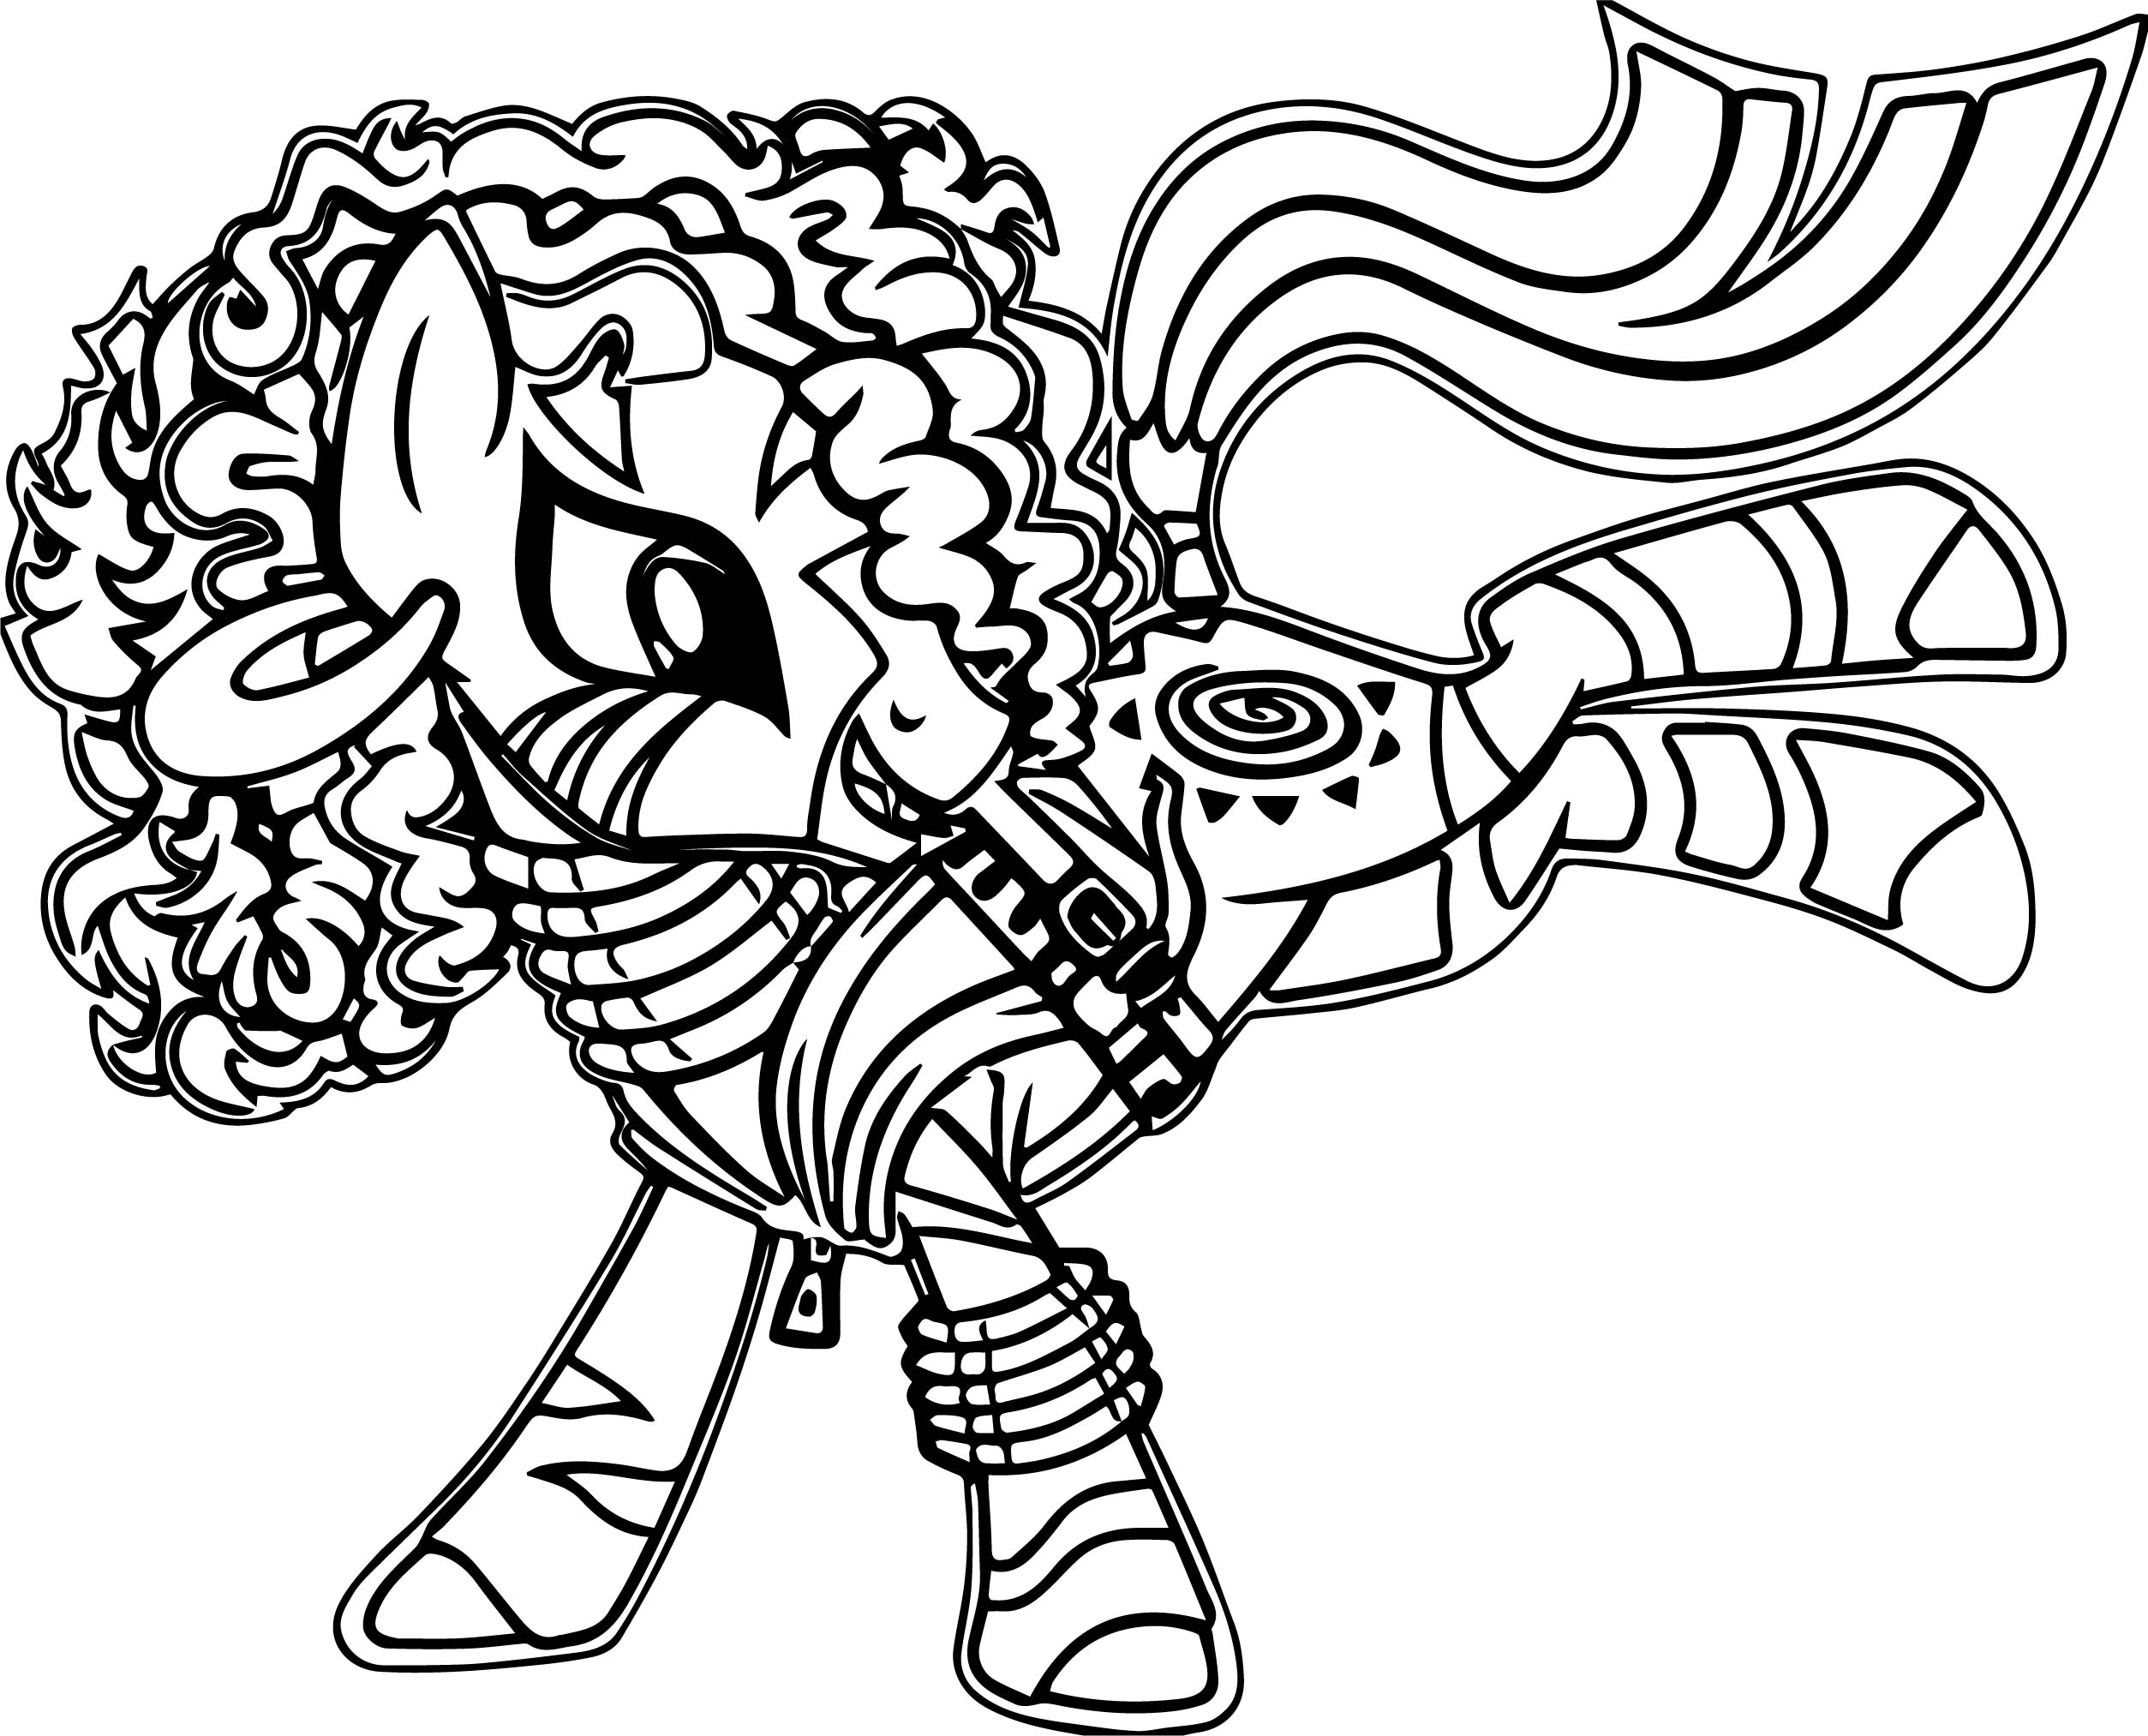 Zecora Song Coloring Page